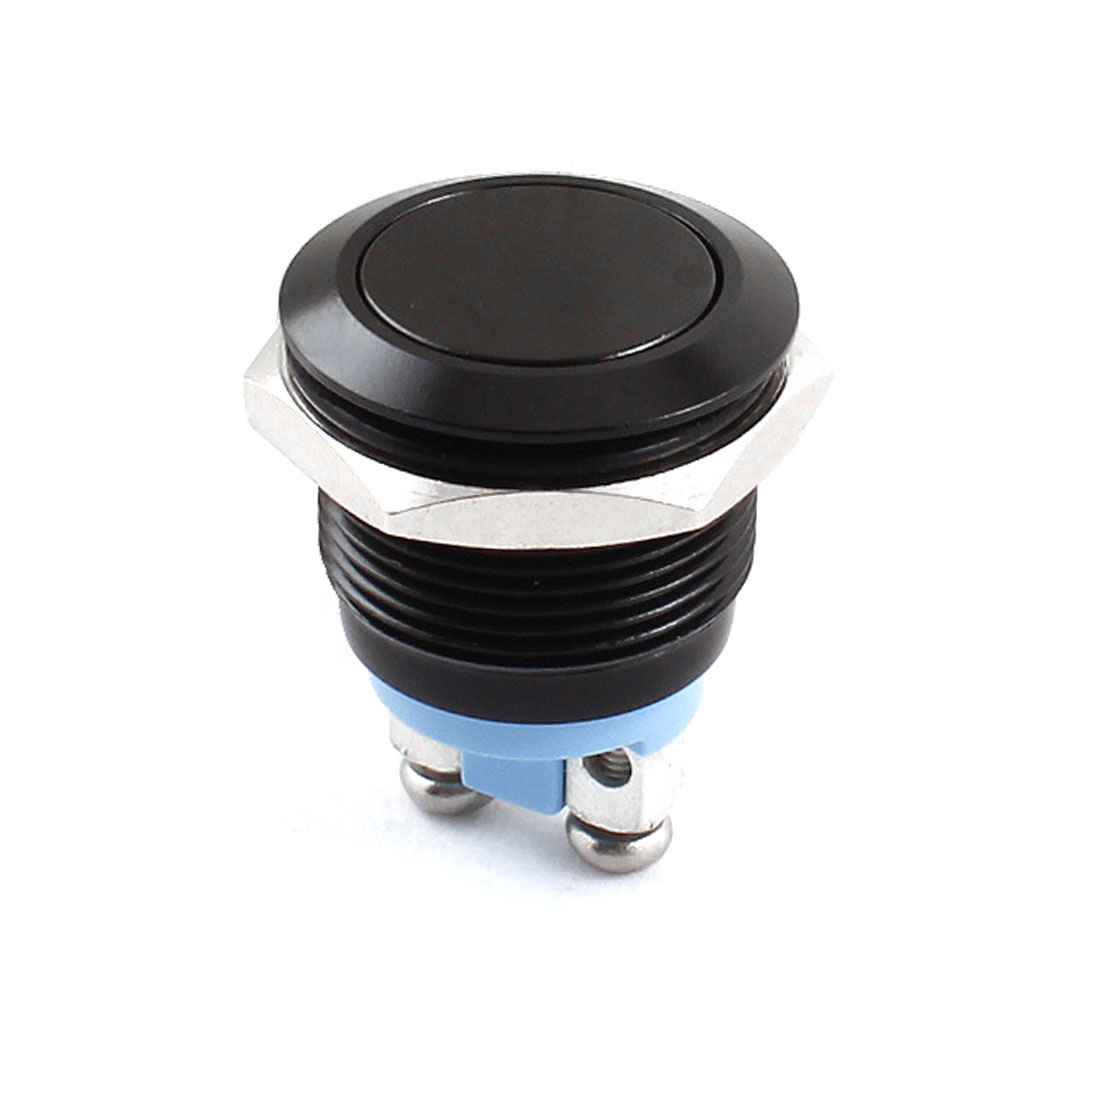 AC 250V 5A 19mm Dia Thread Panel Mount SPST Normal Open 2 Terminals Momentary Black Metal Push Button Switch